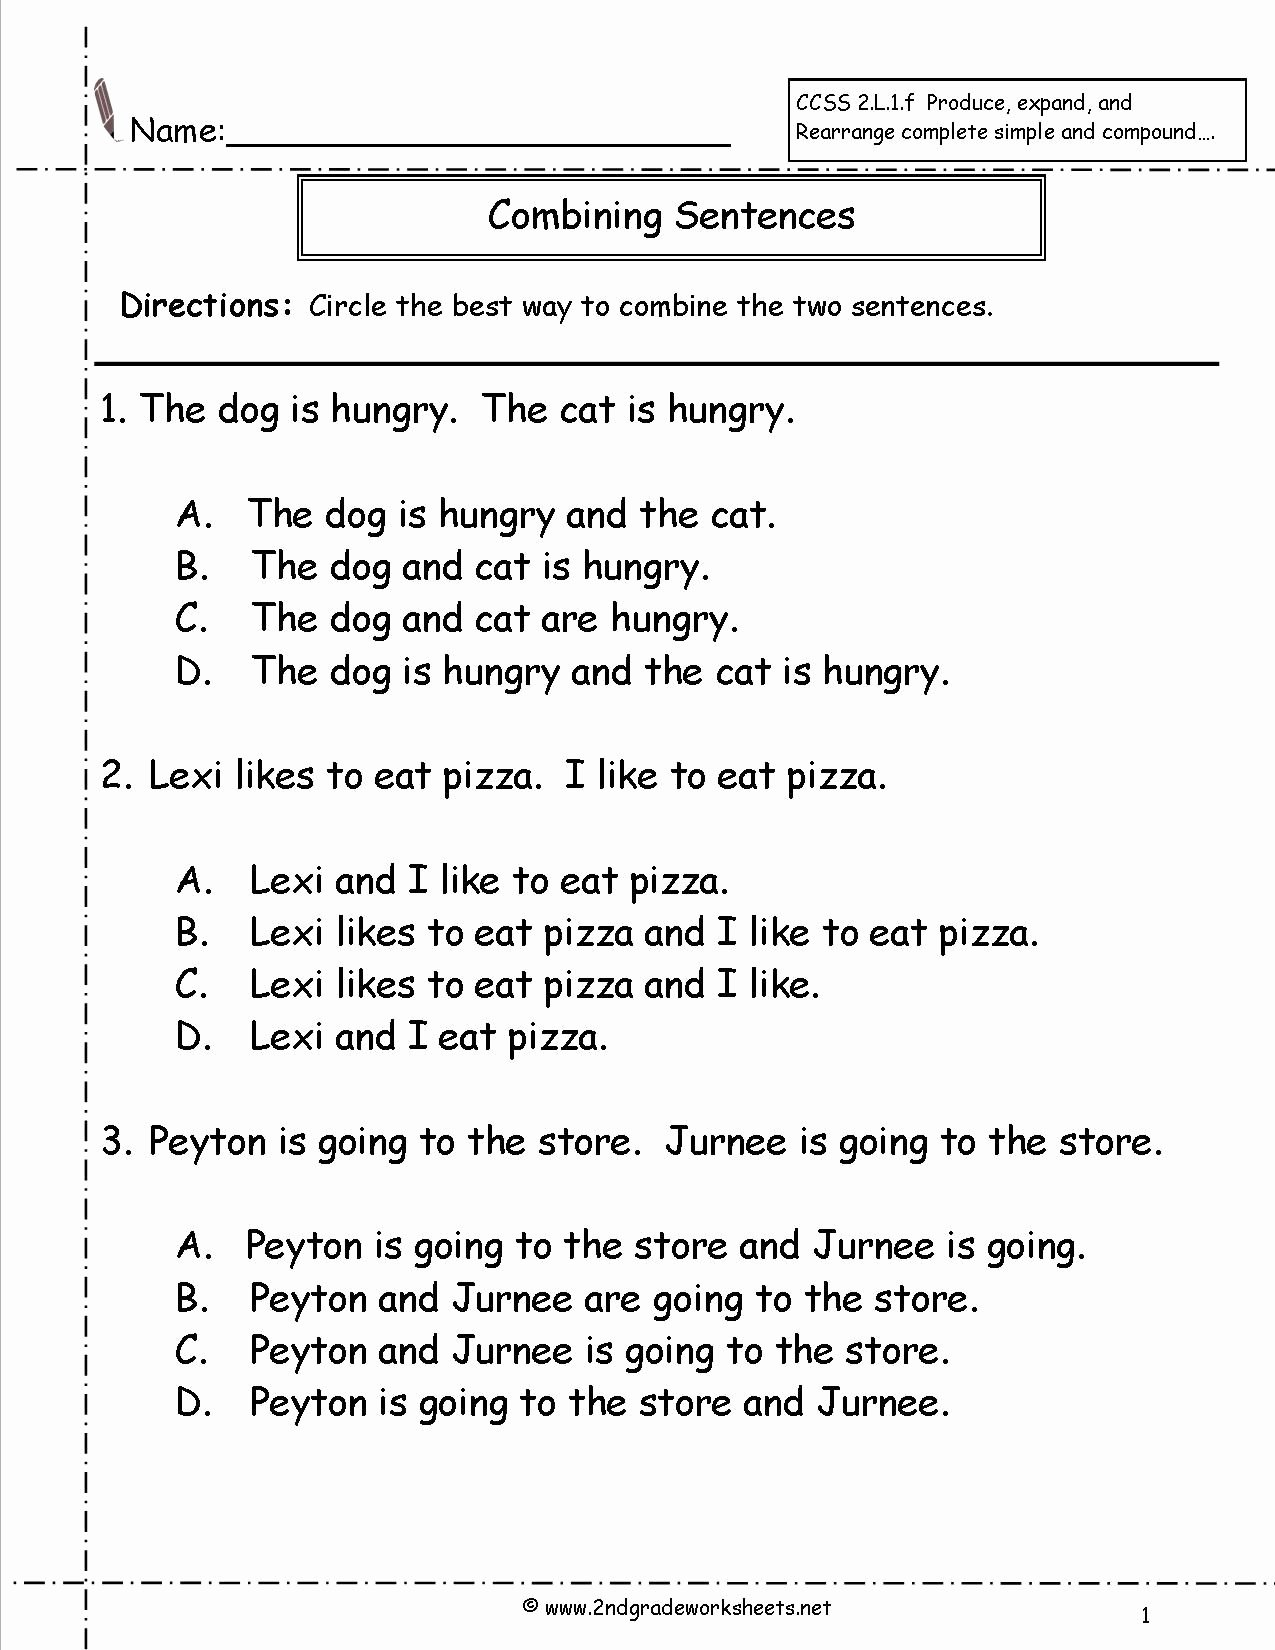 Combining Sentences Worksheet 3rd Grade Ideas Bining Sentences Worksheet